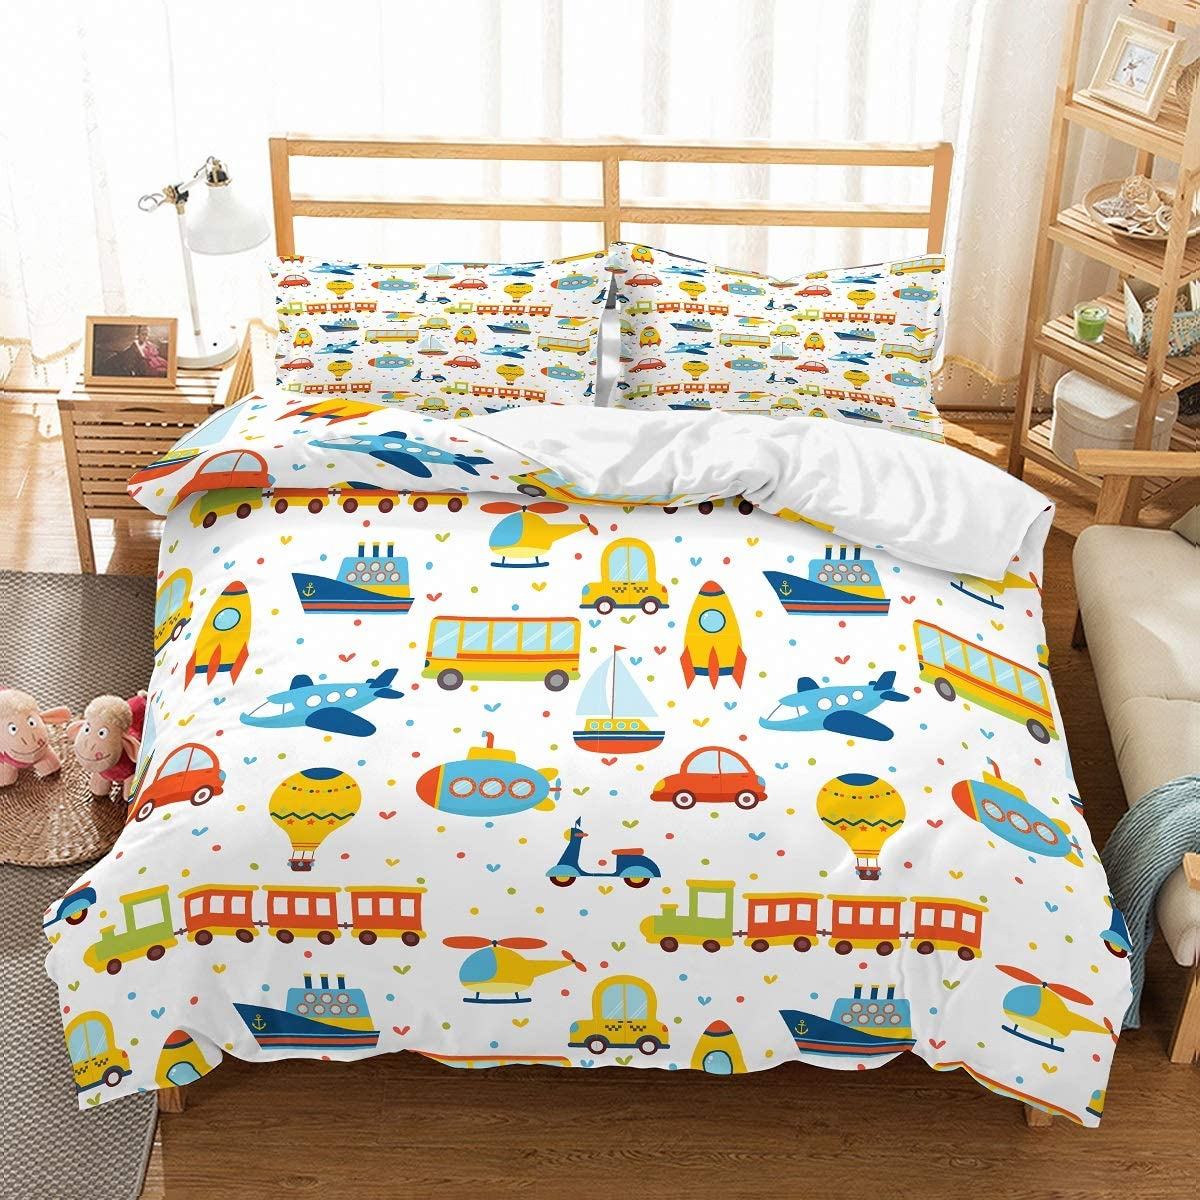 PATATINO MIO Christmas Boys Bedding Set Full Size White 3D Various Vehicles Cars Planes Trains Boat Balloon Toddler Kids Duvet Cover Set 3 Piece(No Comforter Included) 1 Duvet Cover 2 Pillowcase